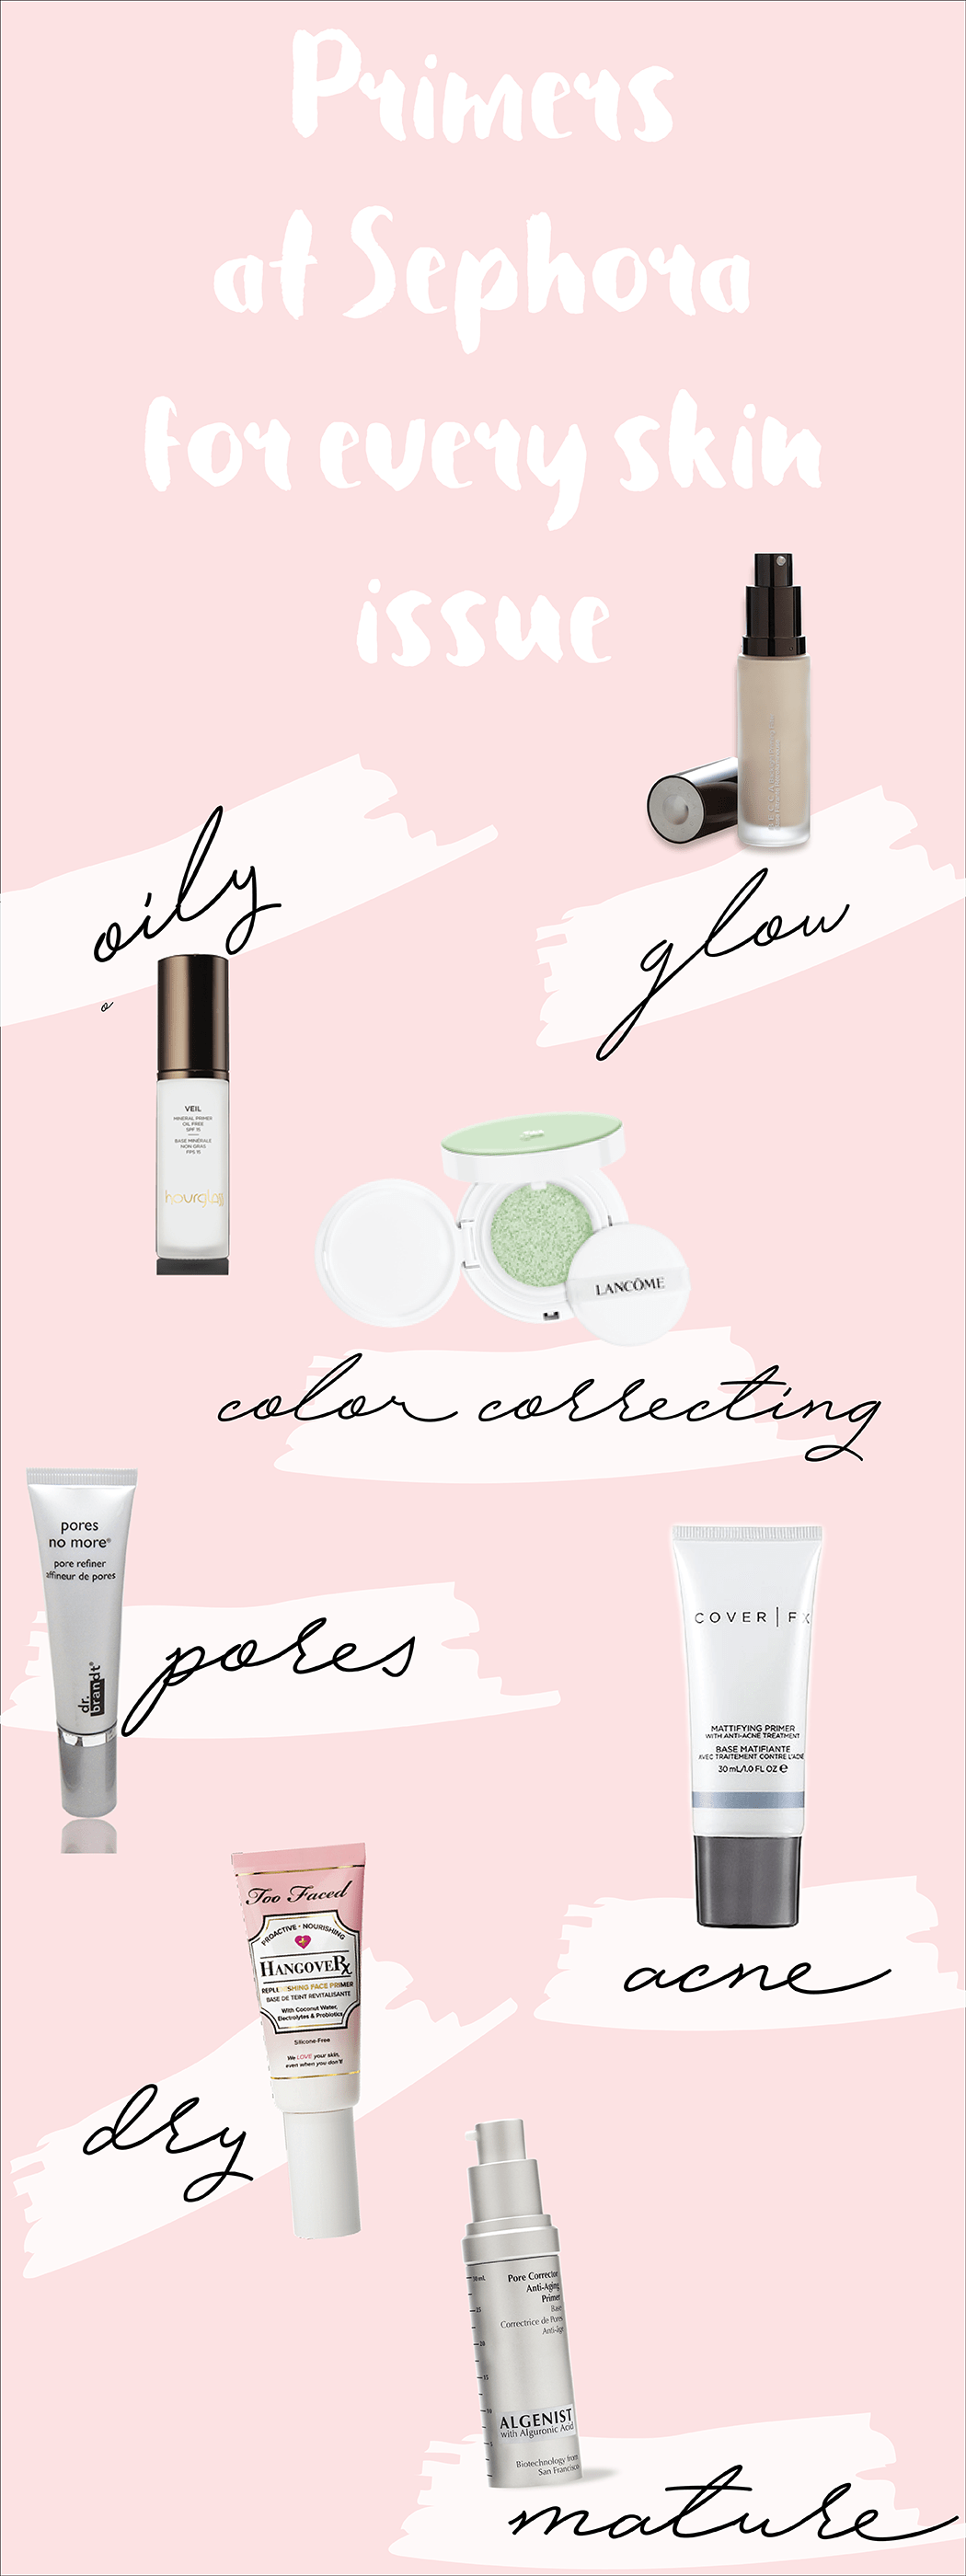 Makeup primers at Sephora for every skin type and issue. Makeup primers for acne prone skin, makeup primer oily skin, makeup primer wrinkle skin, makeup primer dry skin, color correcting makeup primer, makeup primer for large pores, anti aging makeup primer, makeup primer for glowy skin